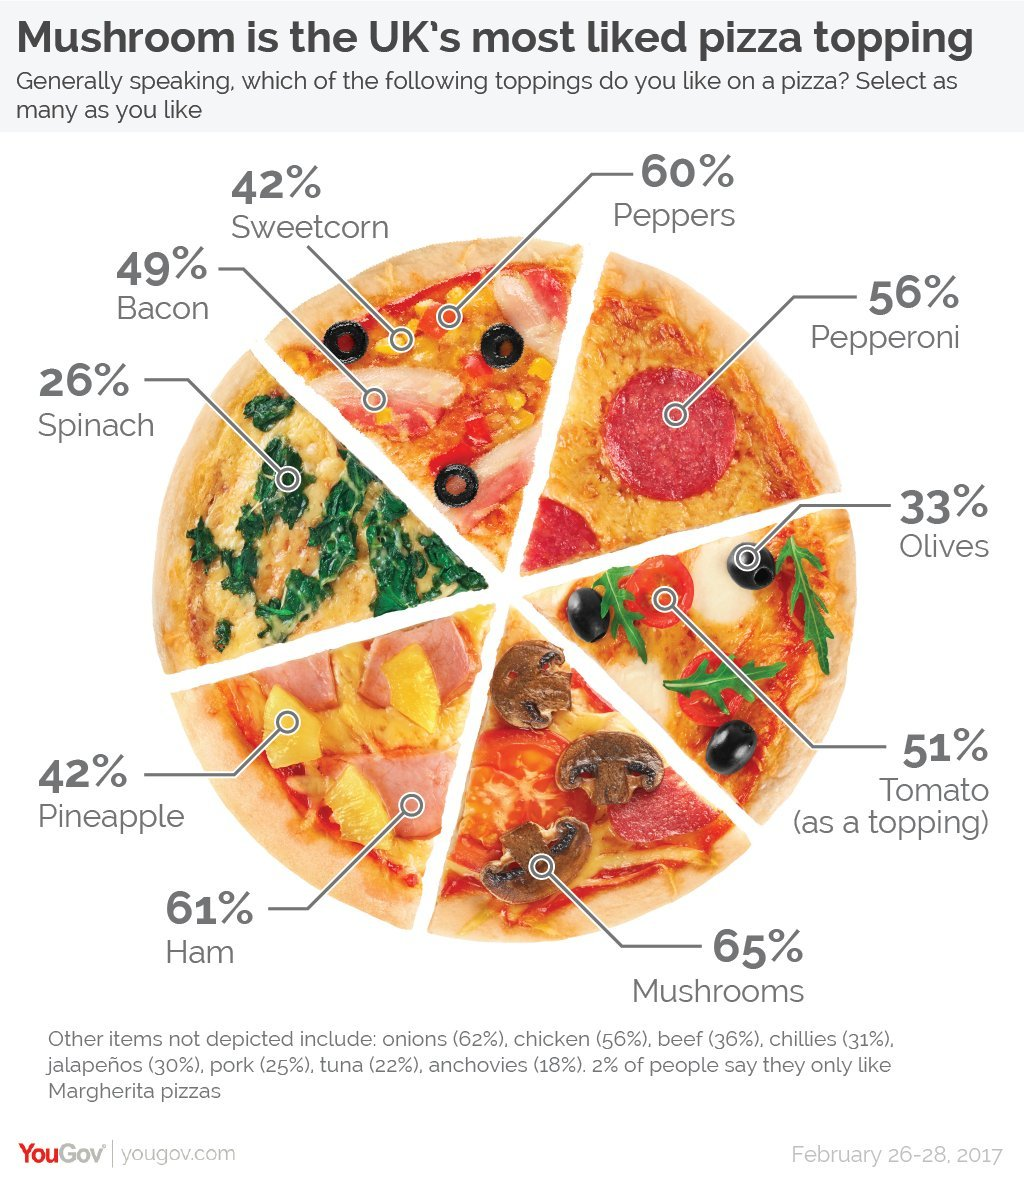 Cb insights on twitter mama mia this pie chart out of the uk 121 pm 7 mar 2017 nvjuhfo Images